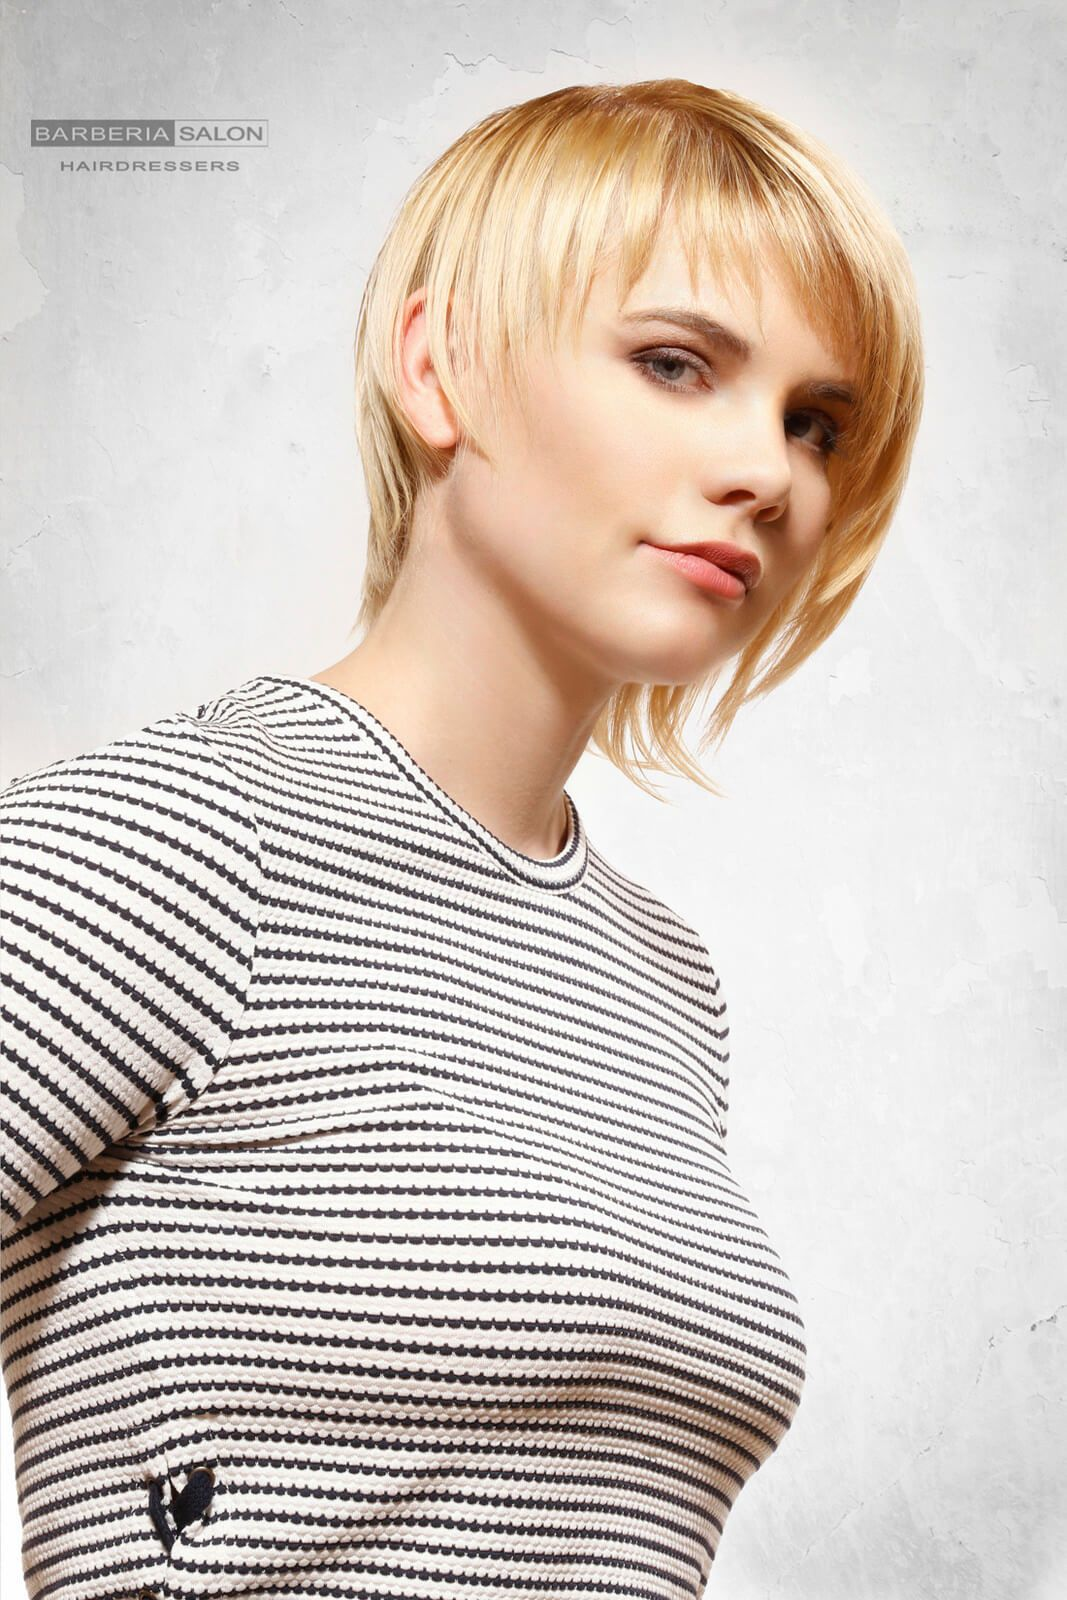 goto short hairstyles for fine hair short hair pixie cuts